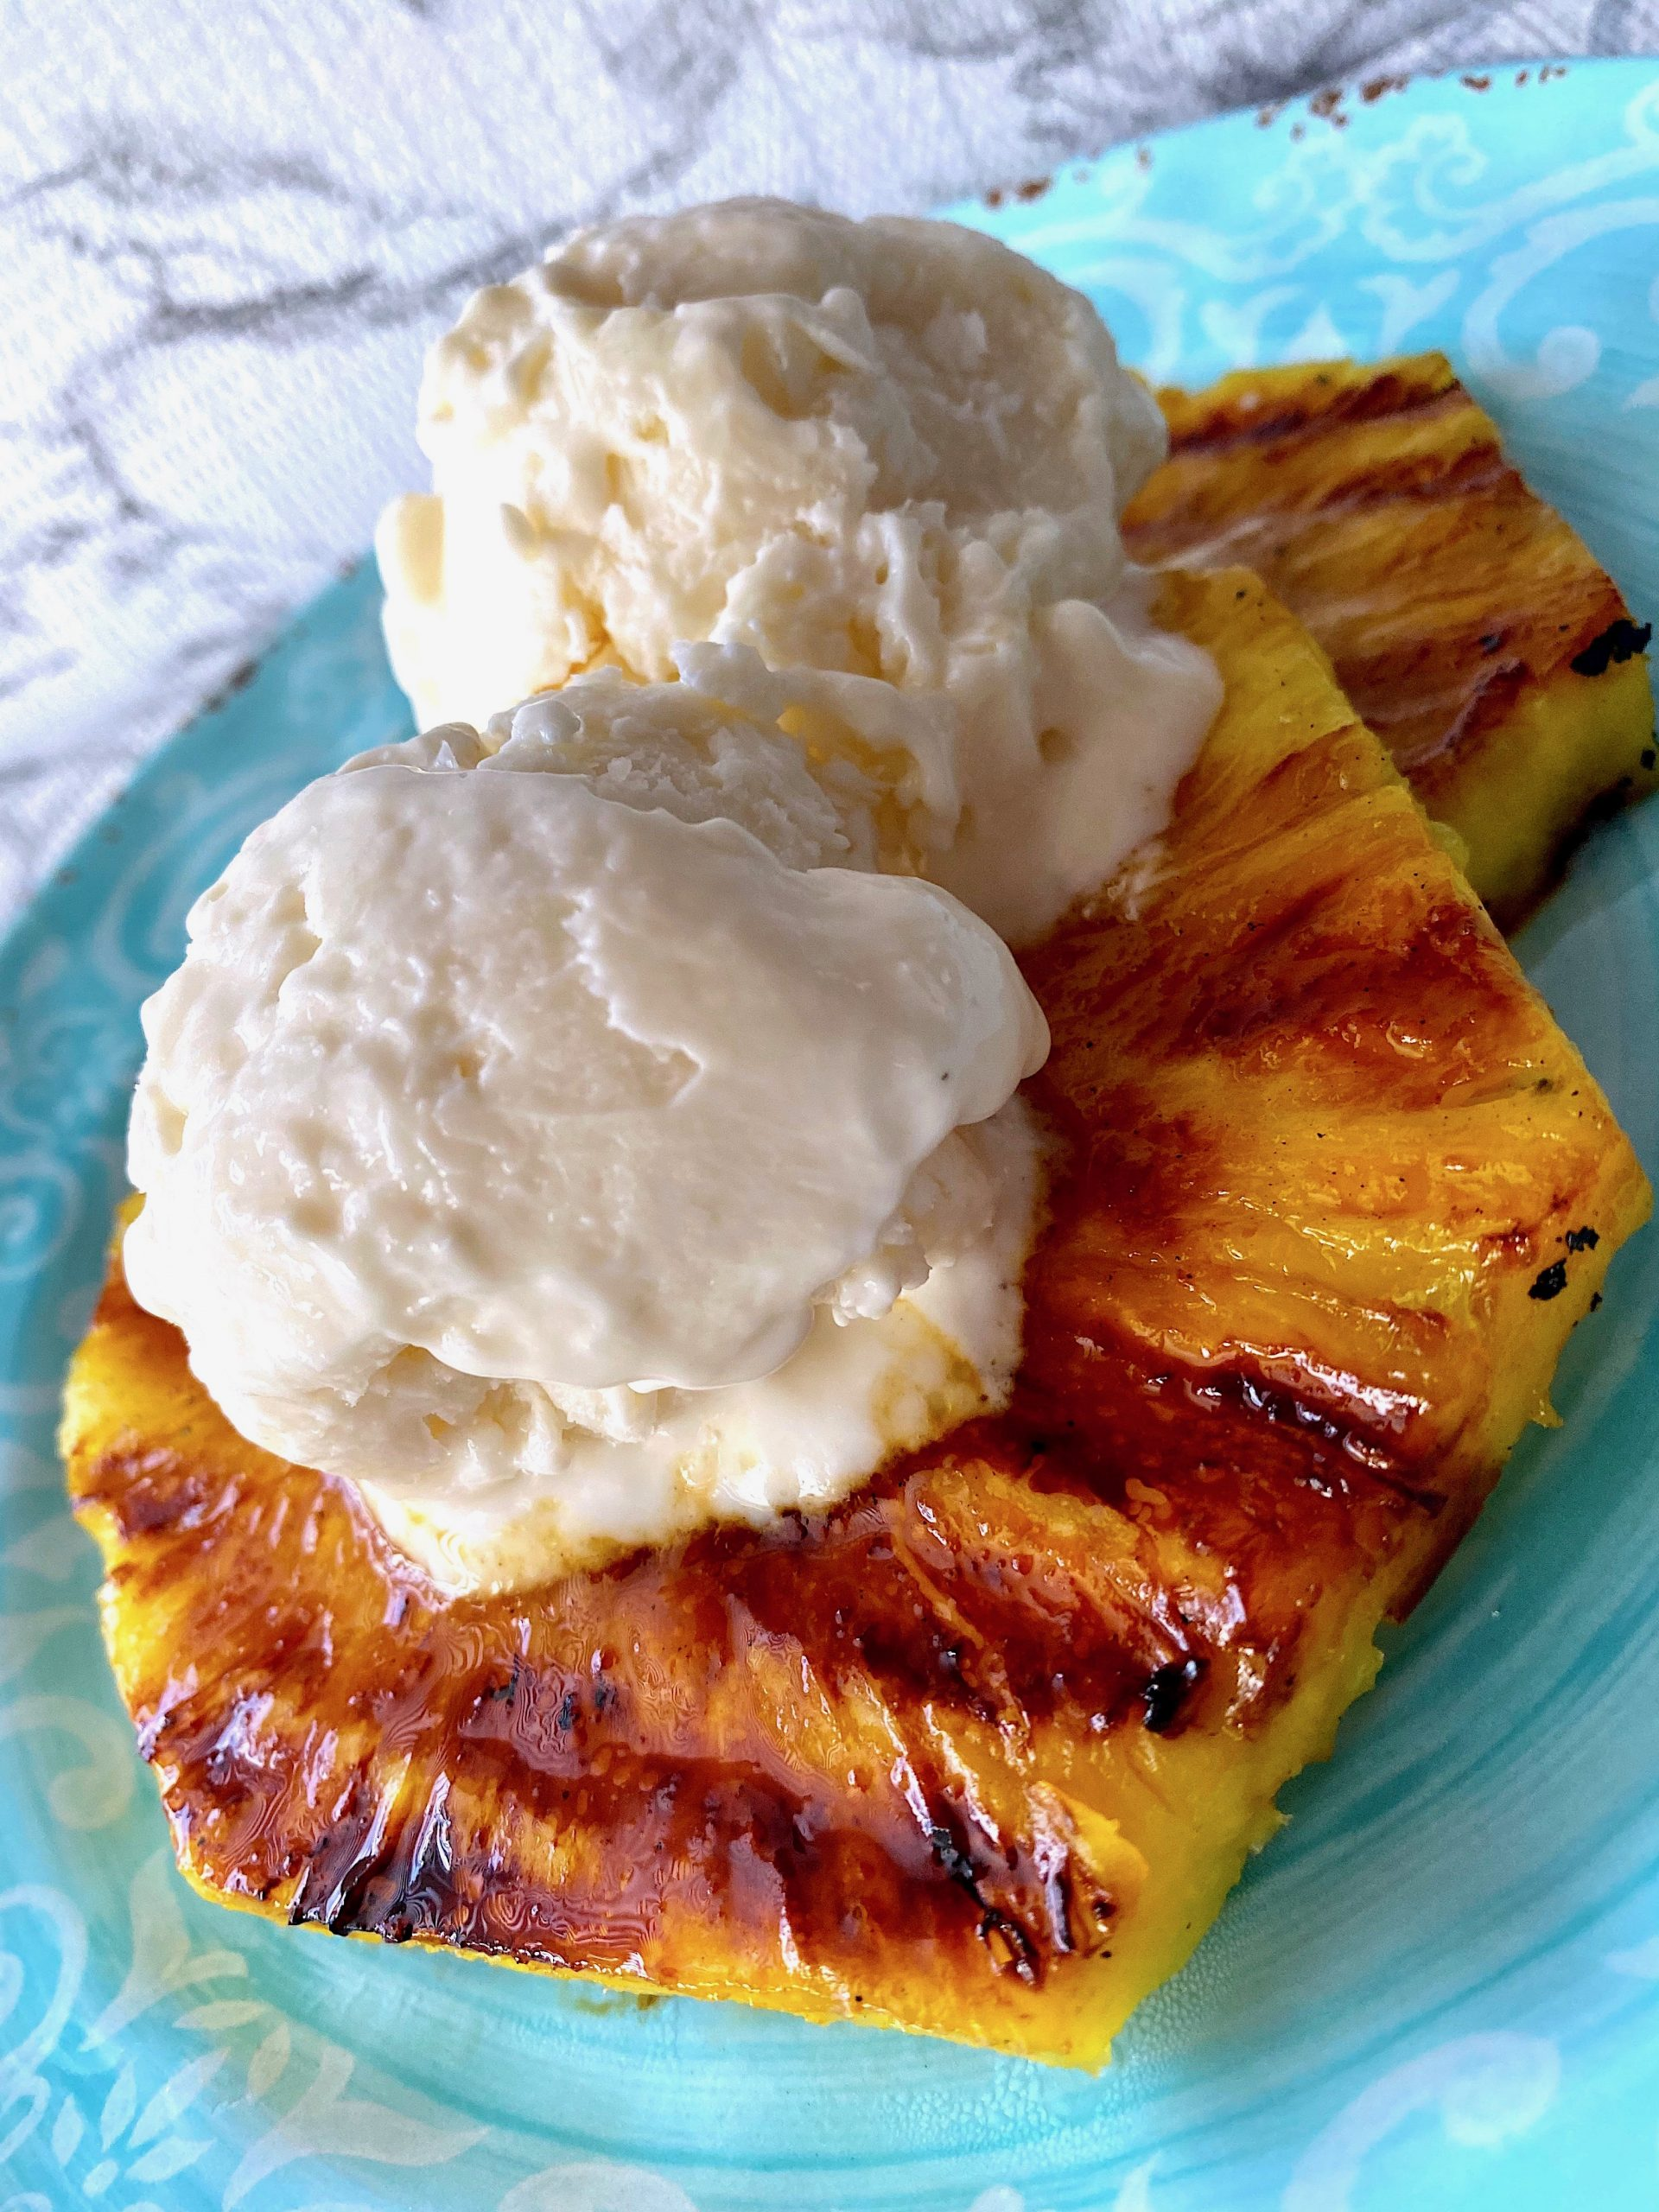 grilled pineapple with yogurt sorbet